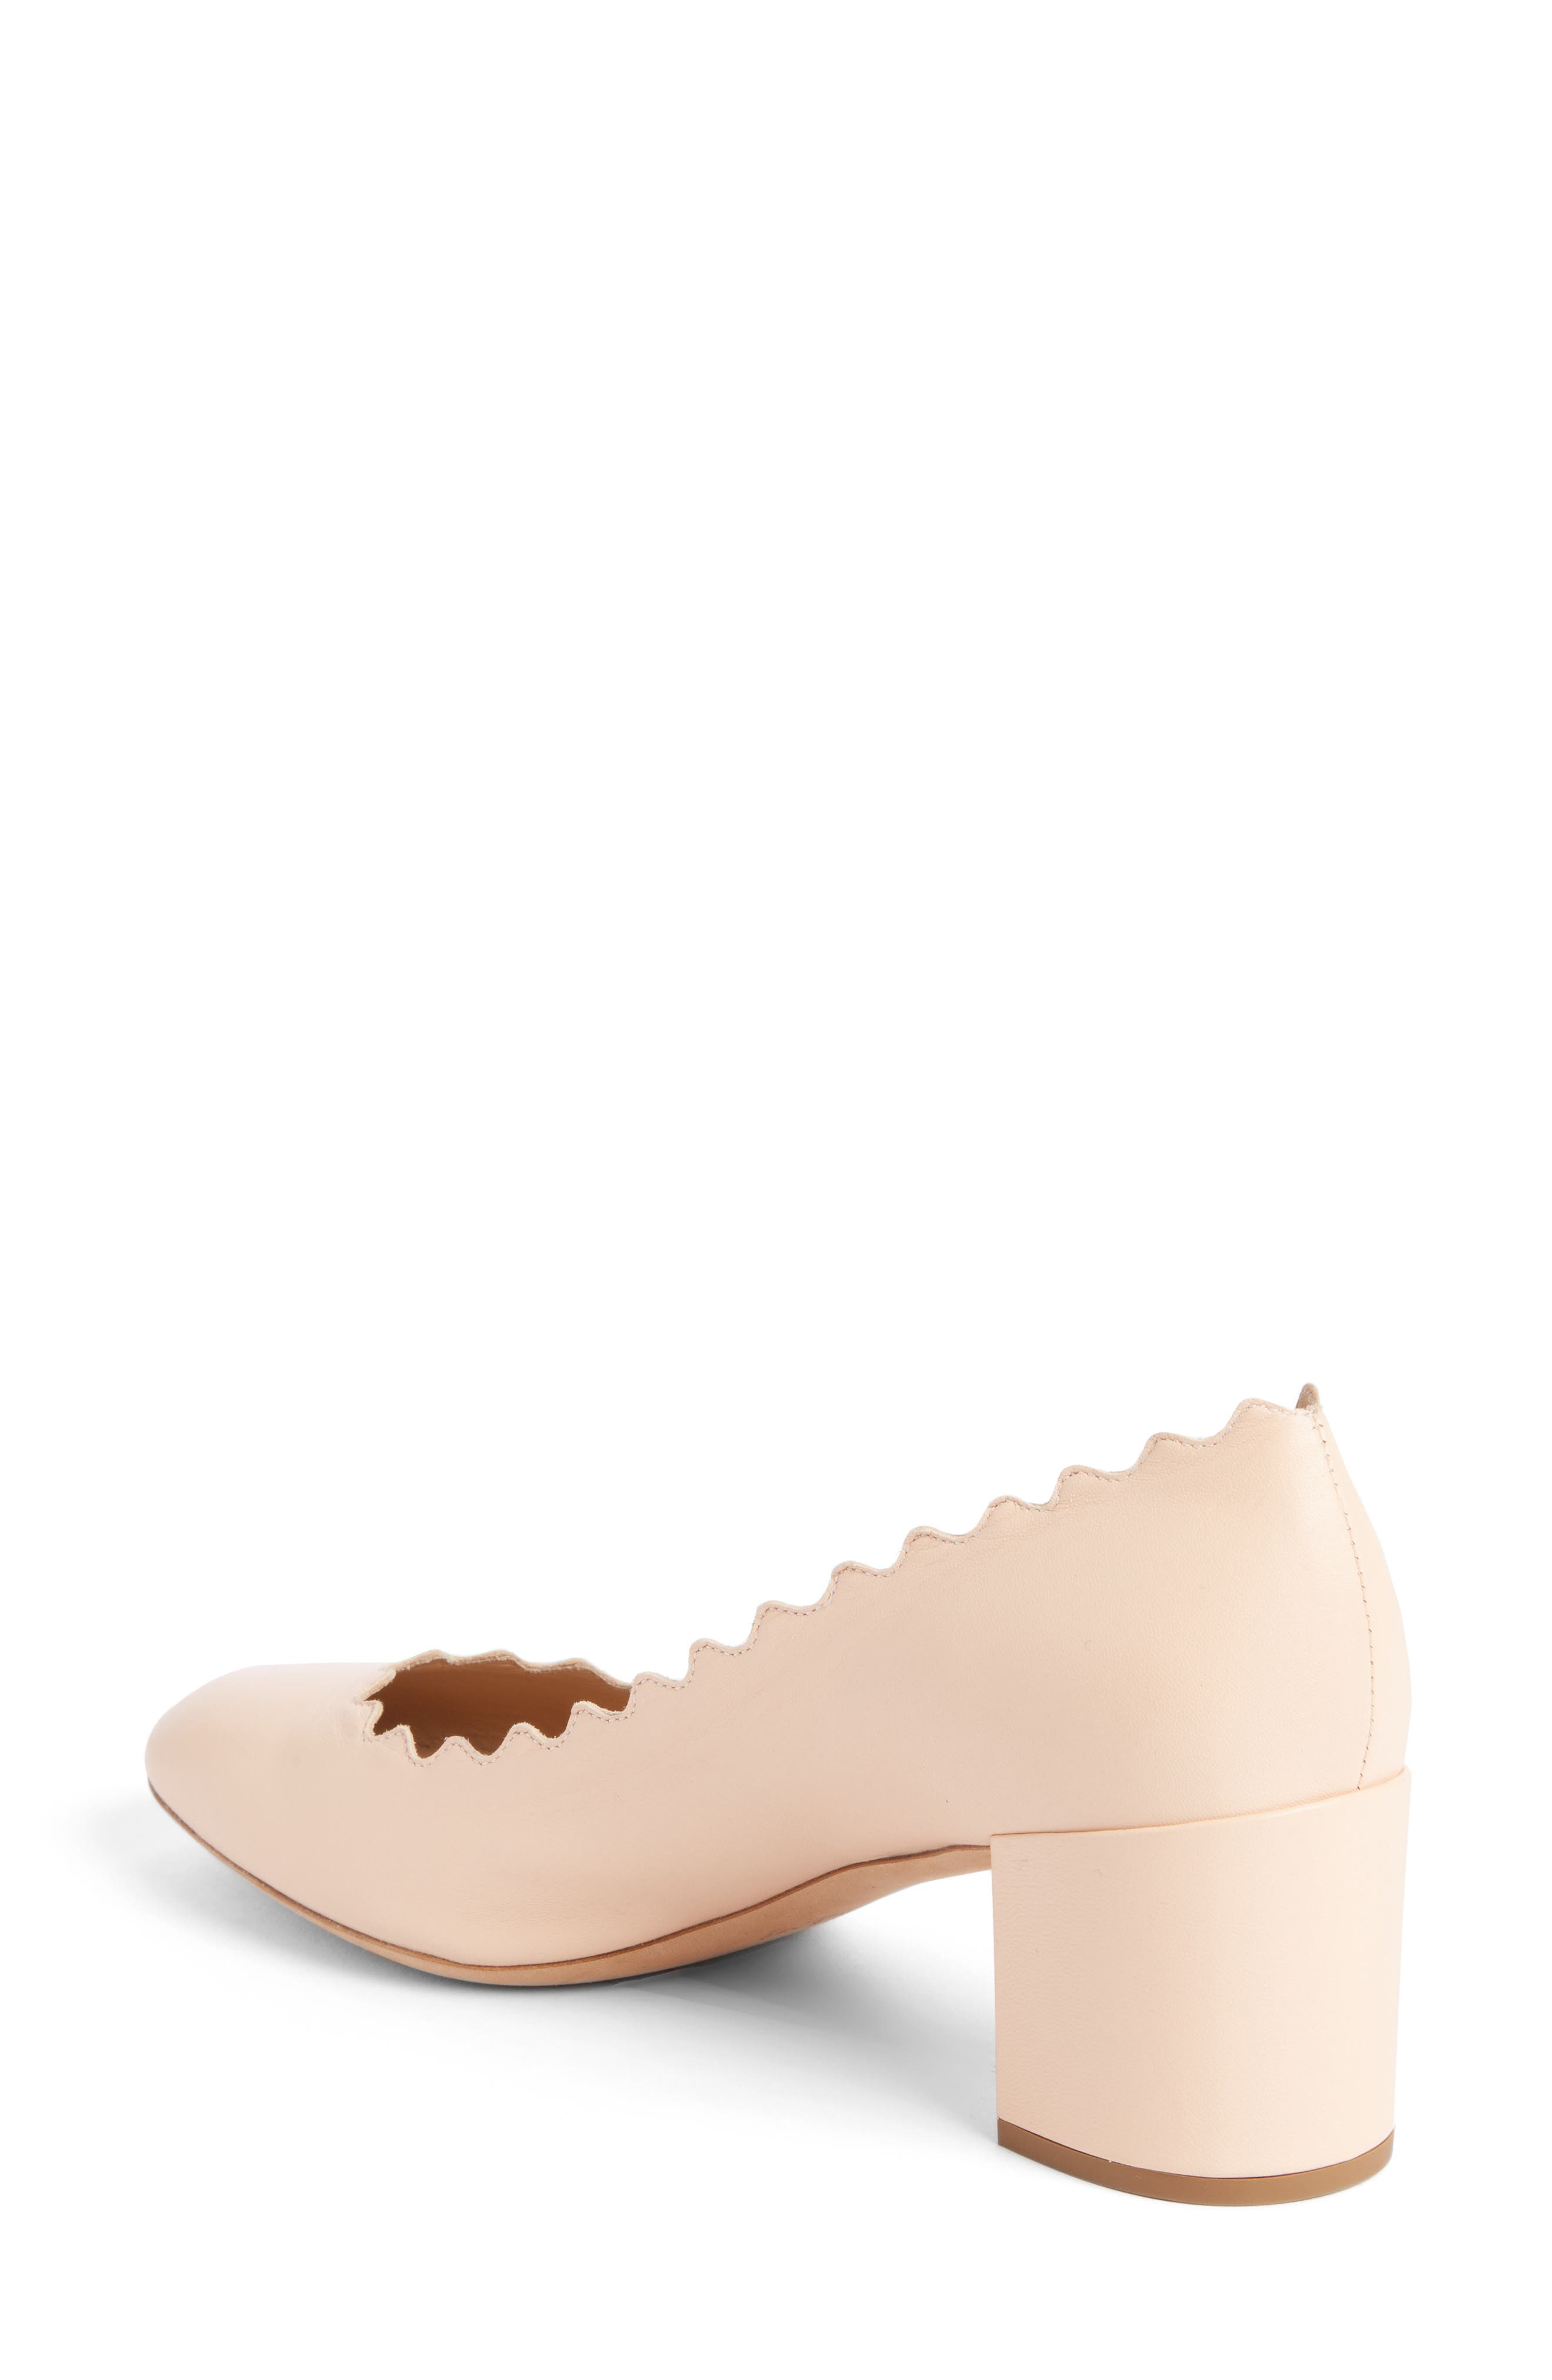 Lauren Scalloped Pump,                             Alternate thumbnail 2, color,                             Honey Nude